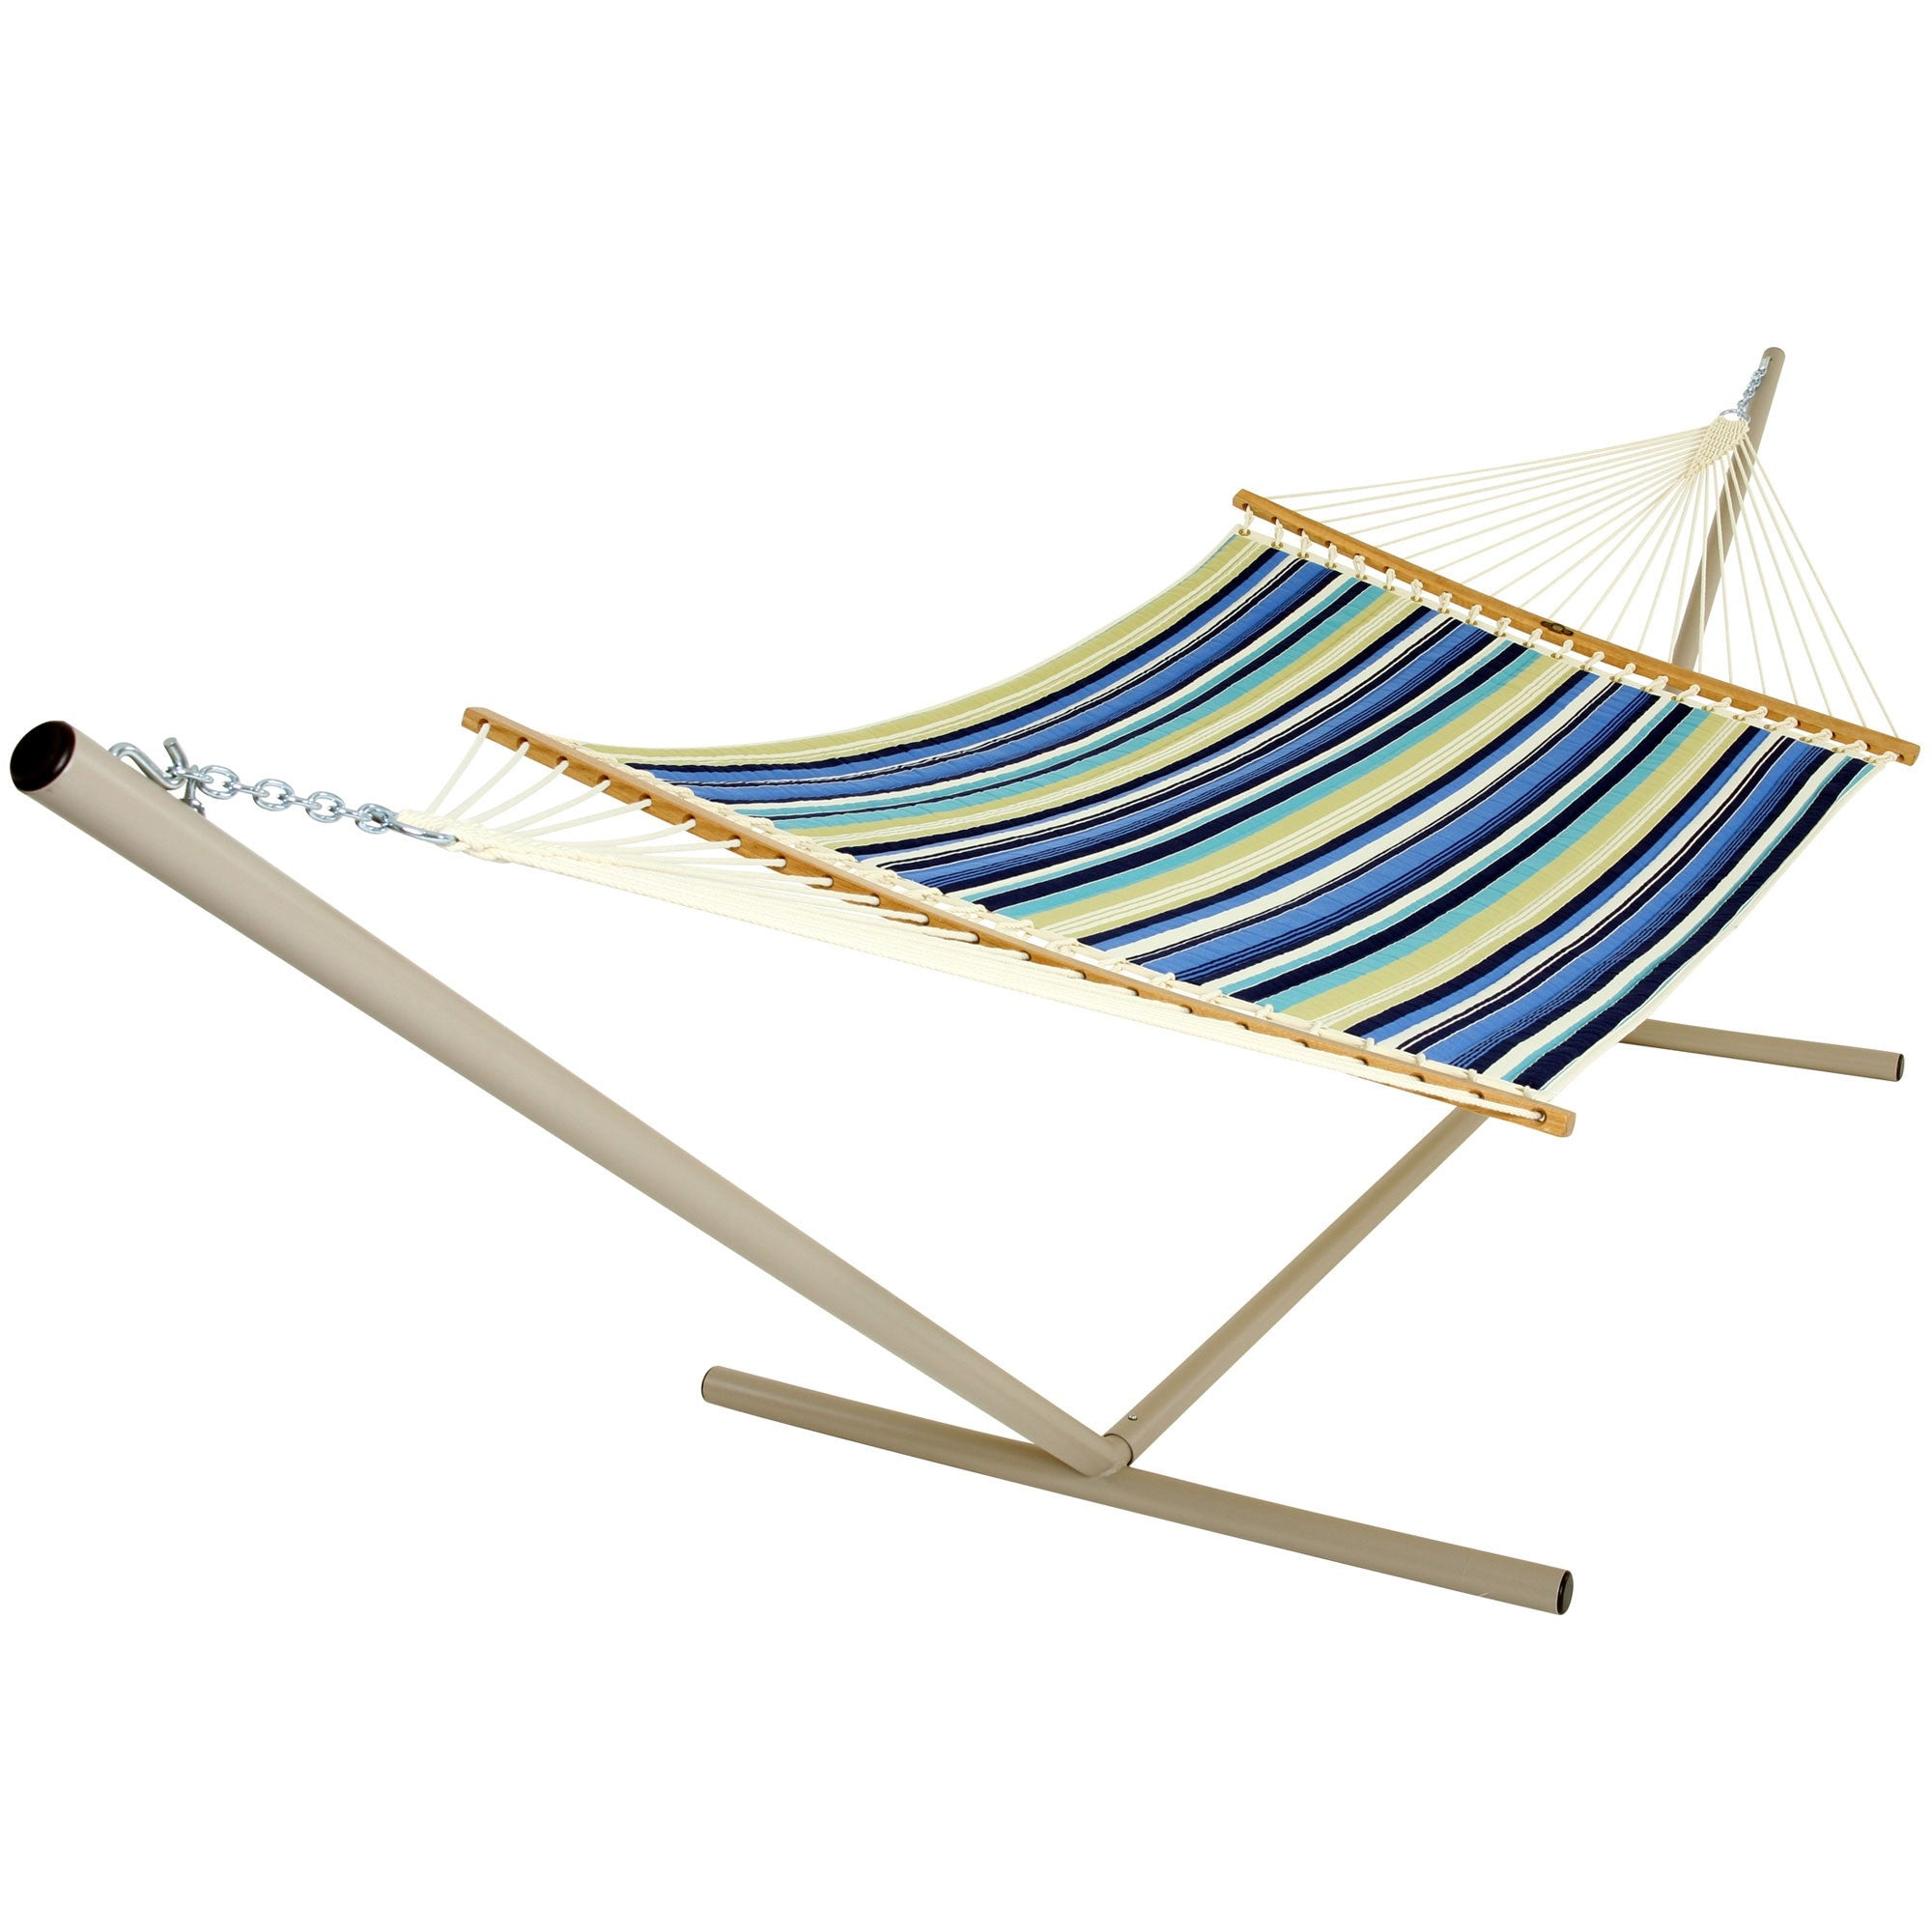 sunbrella with etsustore com vivere stand pillow costco chair hammock wood canada